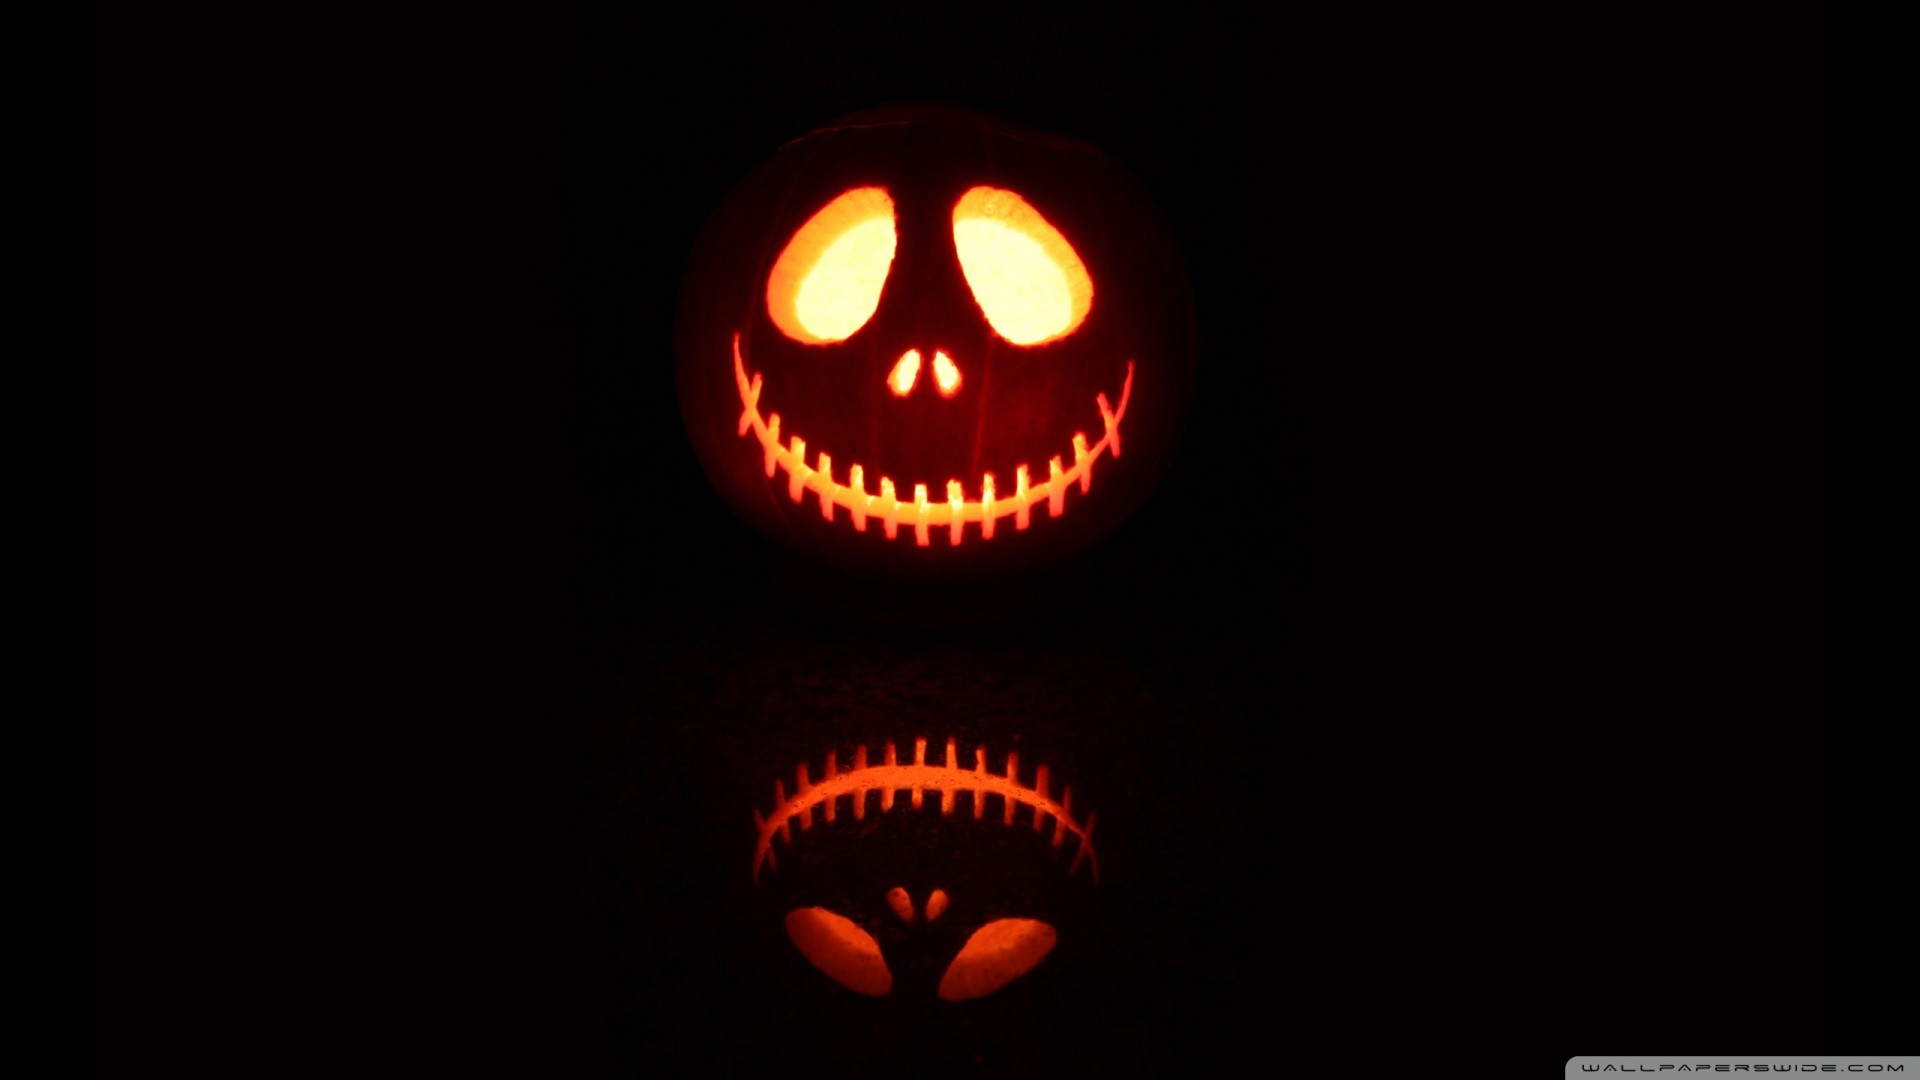 Scary wallpapers hd 1920x1080 60 images - Scary halloween wallpaper ...